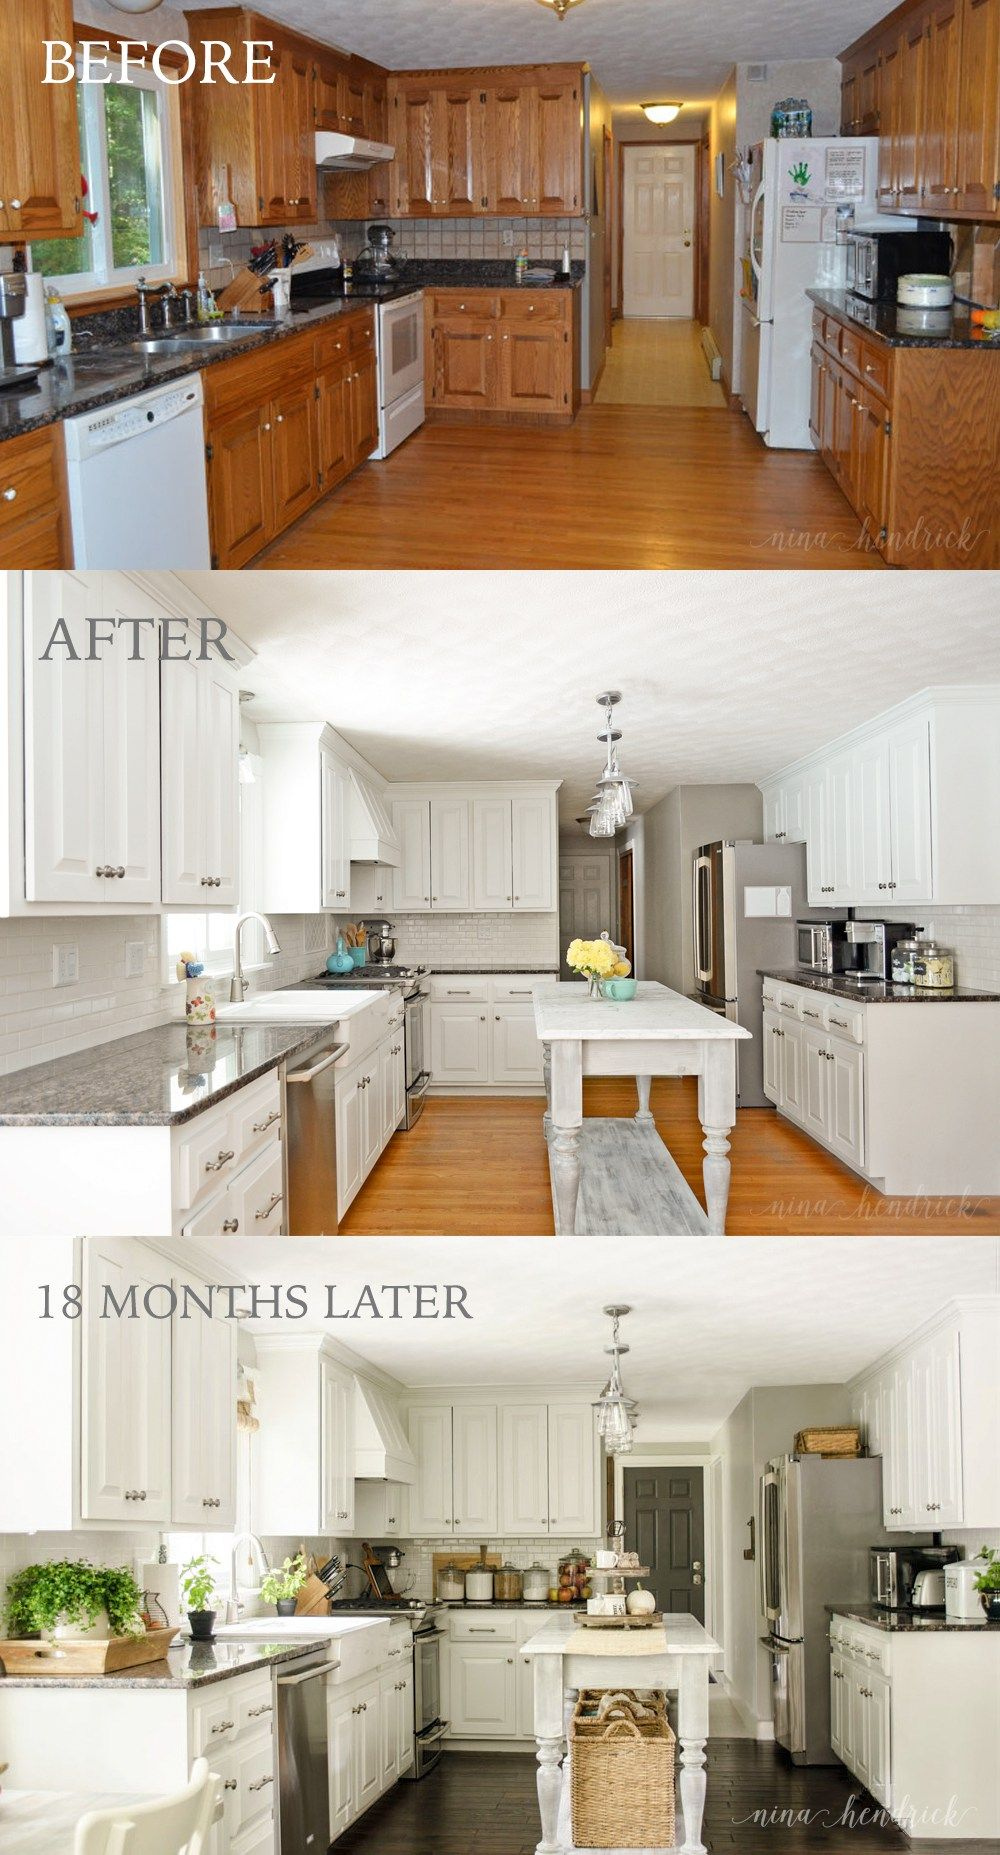 makeover a cupboard kitchen diy cupboards give ways and low to gallery in your white aqua cost cabinets view